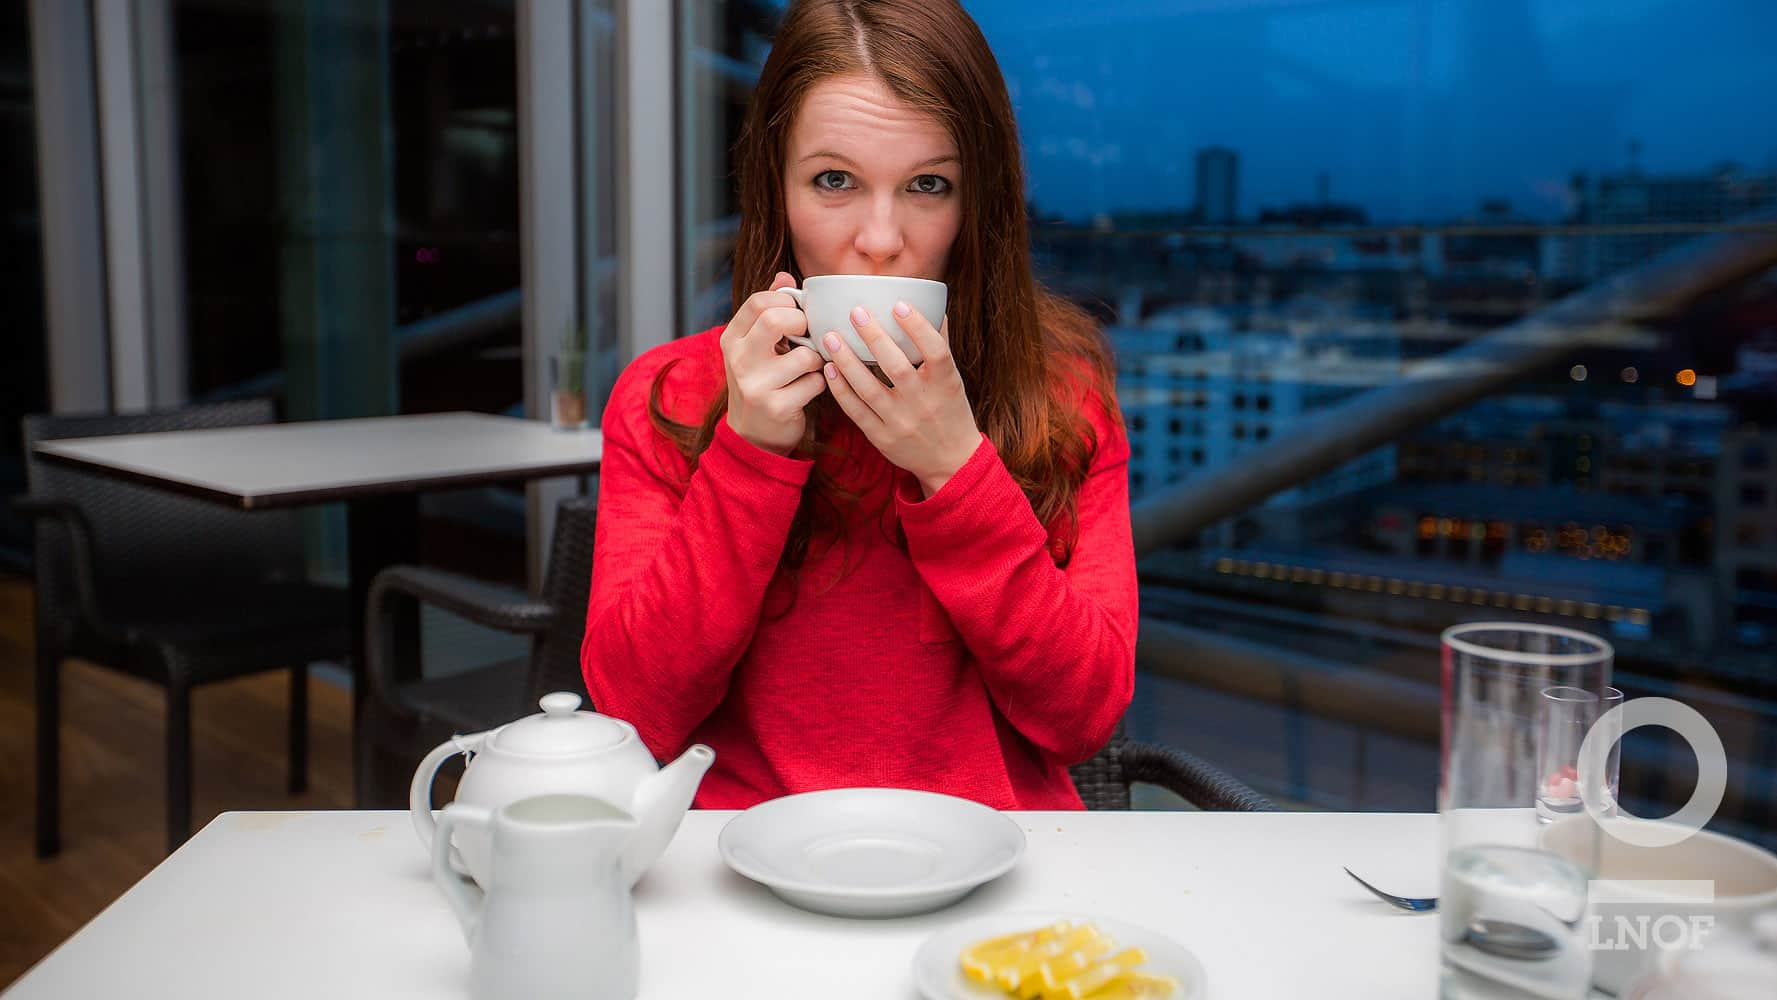 Girl drinking tea in a red jumper